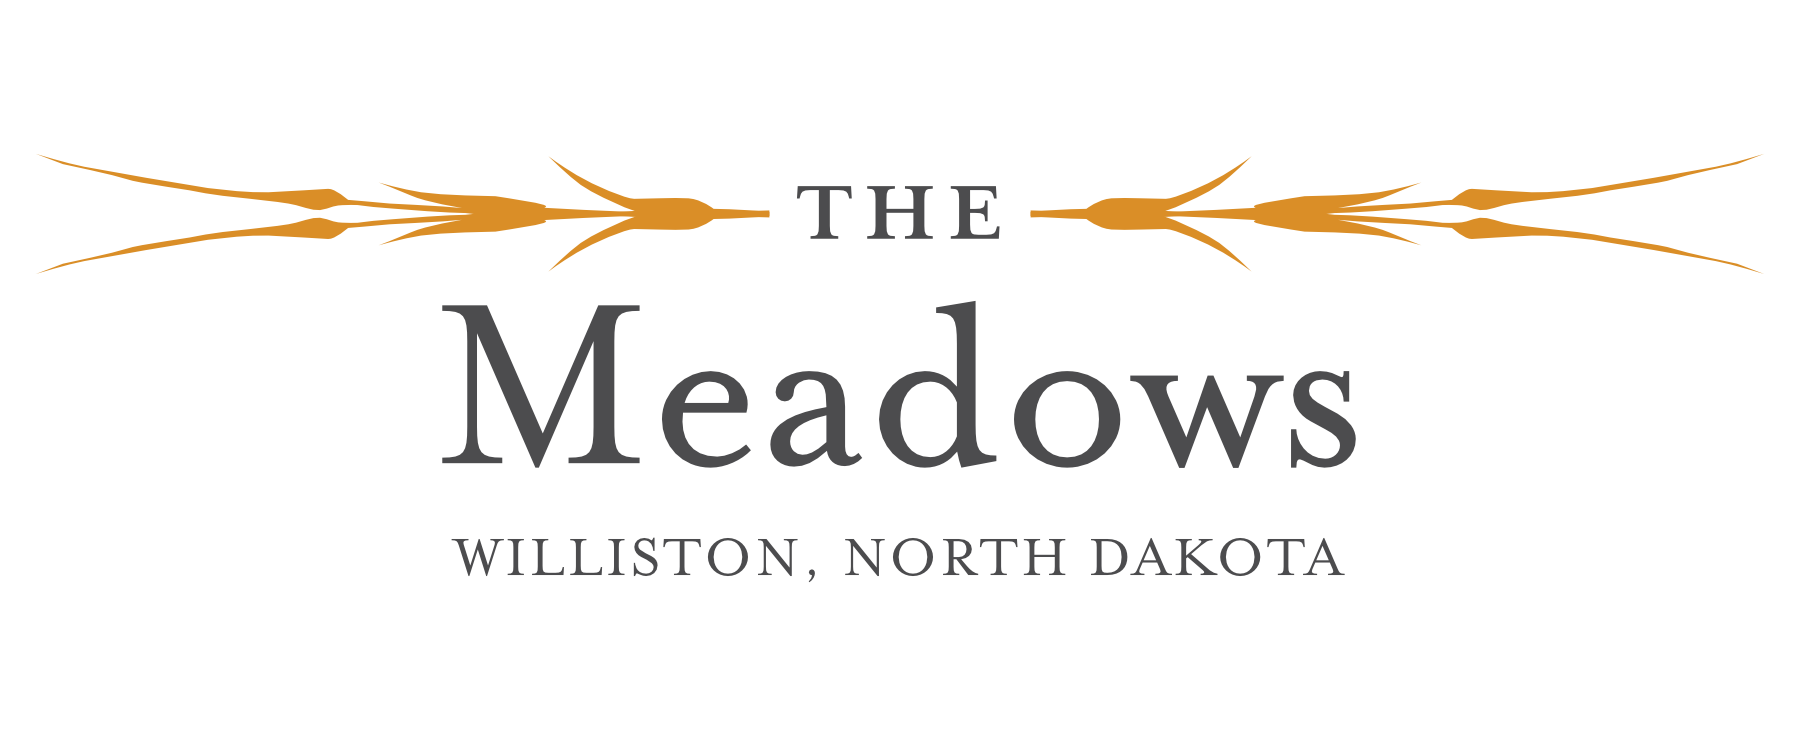 The Meadows Williston, ND